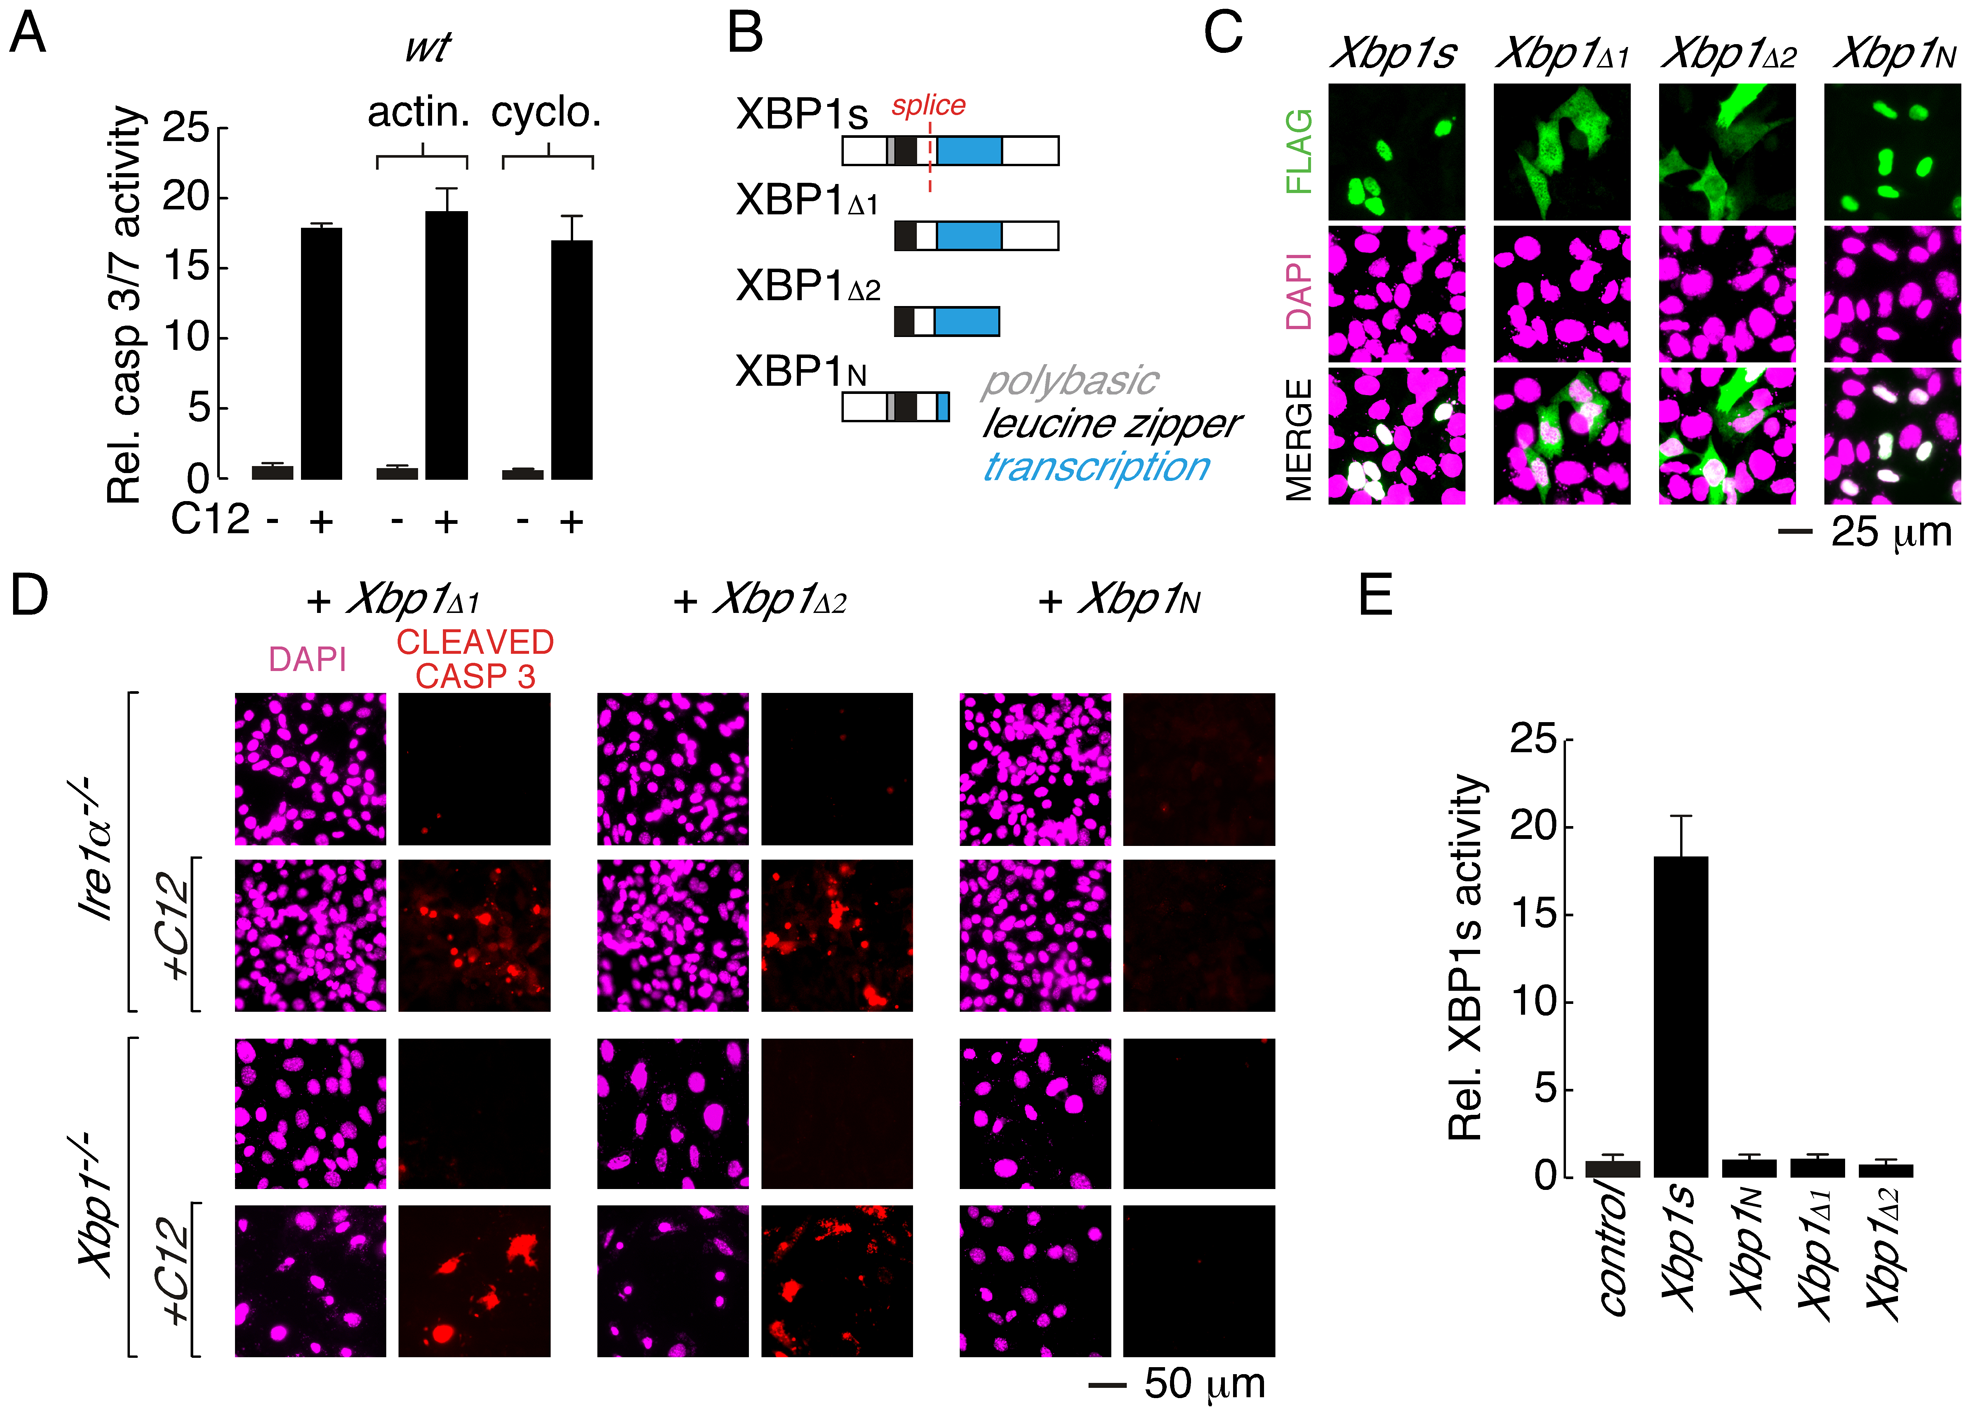 Leucine zipper and transcriptional activation domains of XBP1s are sufficient for C12-mediated caspase activation.